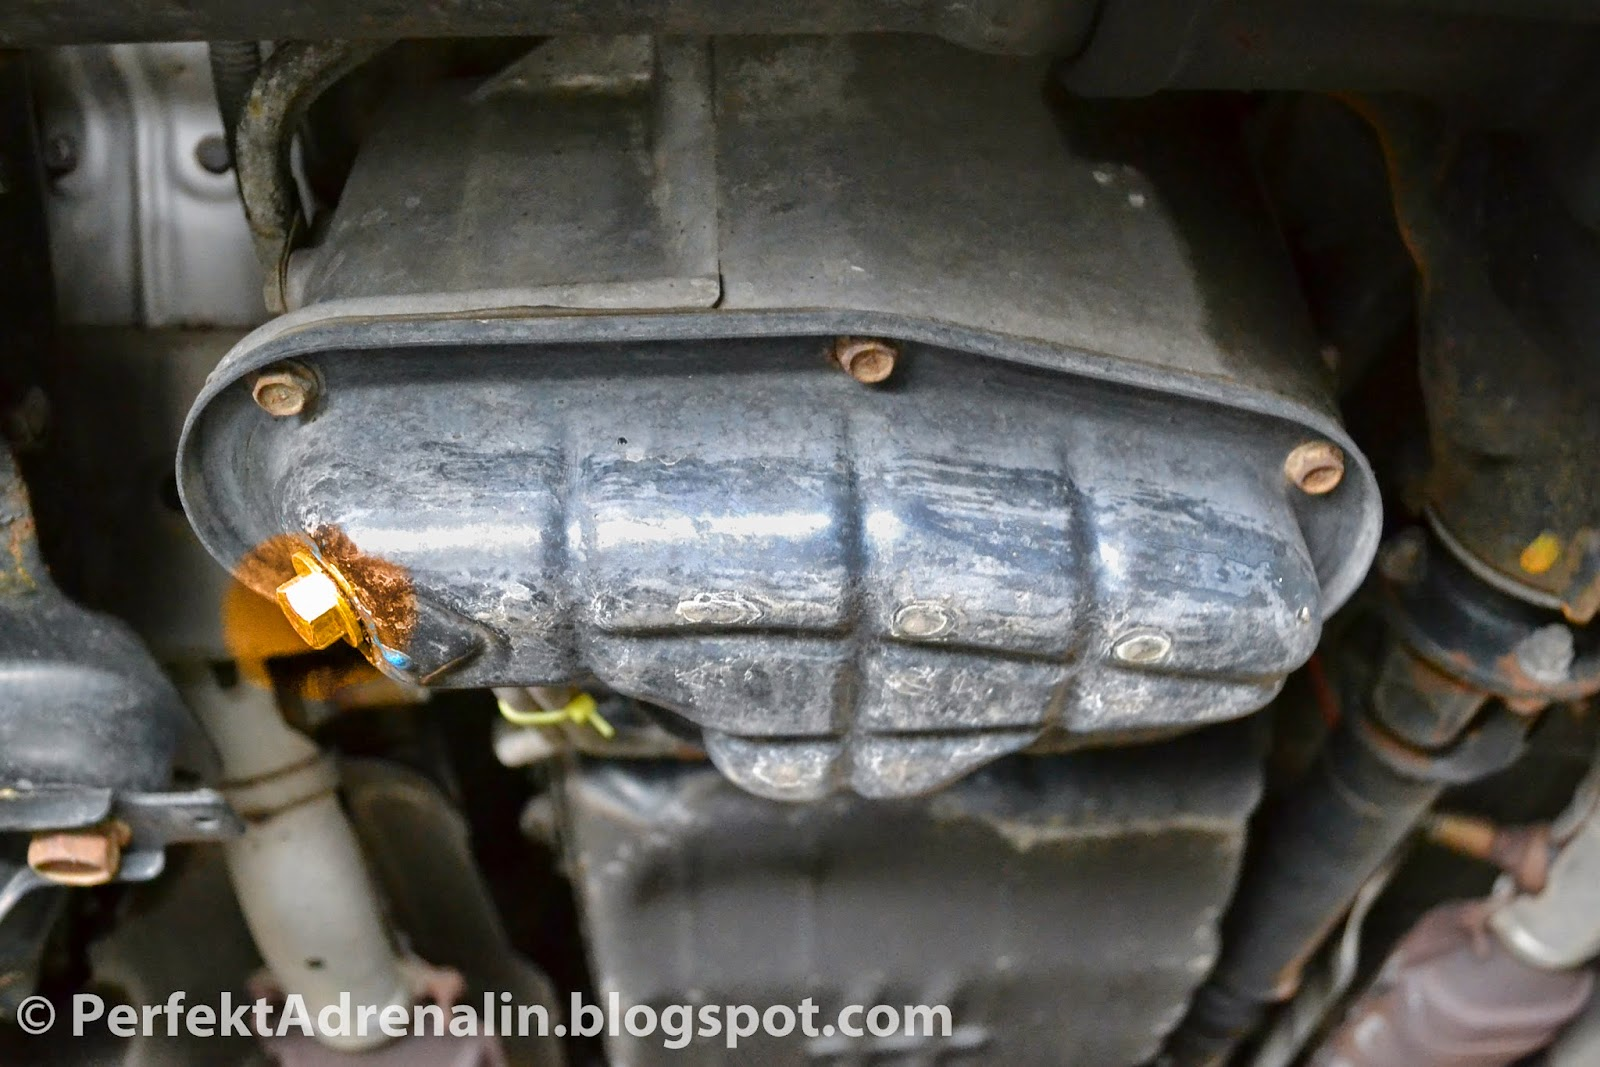 Perfektadrenalin diy infiniti qx4 nissan pathfinder oil change be careful to not damage the pan when loosening drain plug and the oil may be very hot if the car has not cooled down the drain plug is highlighted in vanachro Gallery